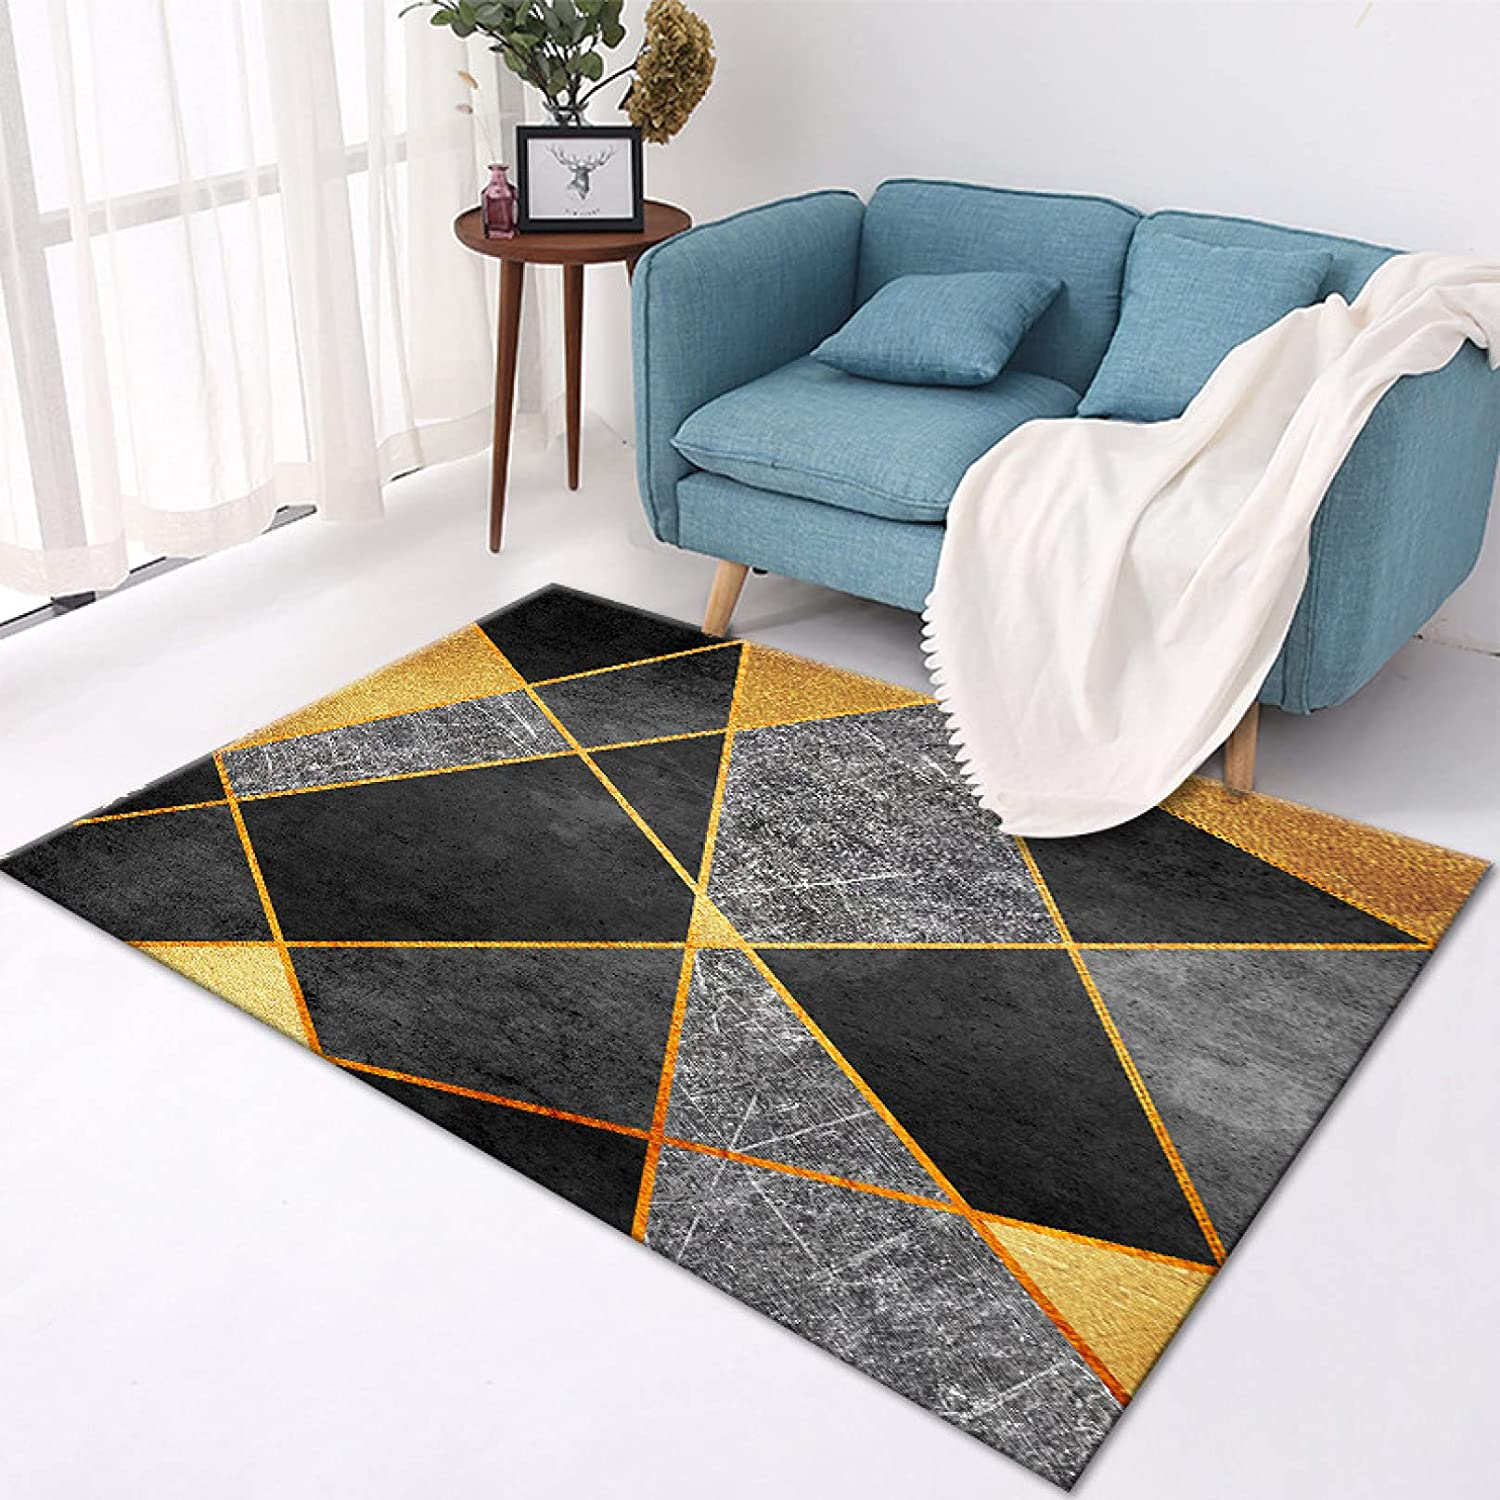 Shaggy Clearance SALE Limited High quality time Floor Carpets Shag Rug Super Be Fuzzy Mat Fluffy for Area